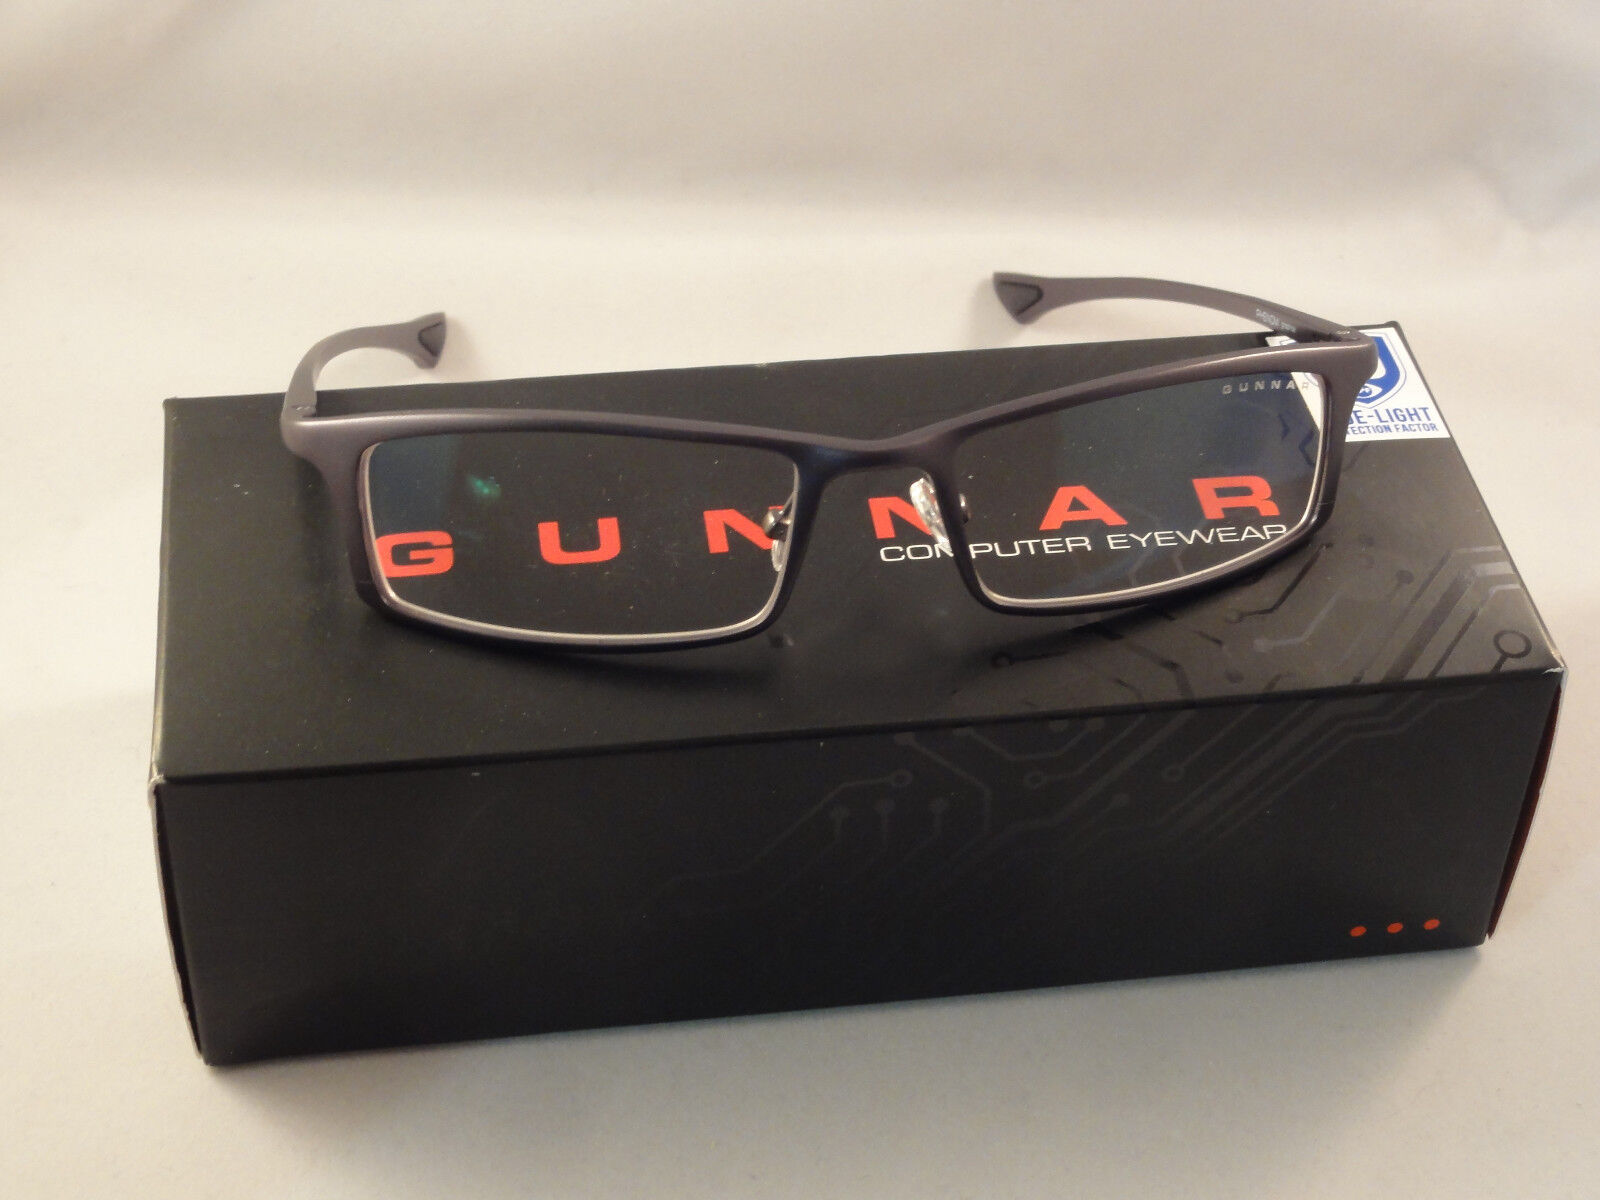 Gunnar Optiks Phenom Advanced Computer/Gaming Eyewear - Graphite - Crystalline